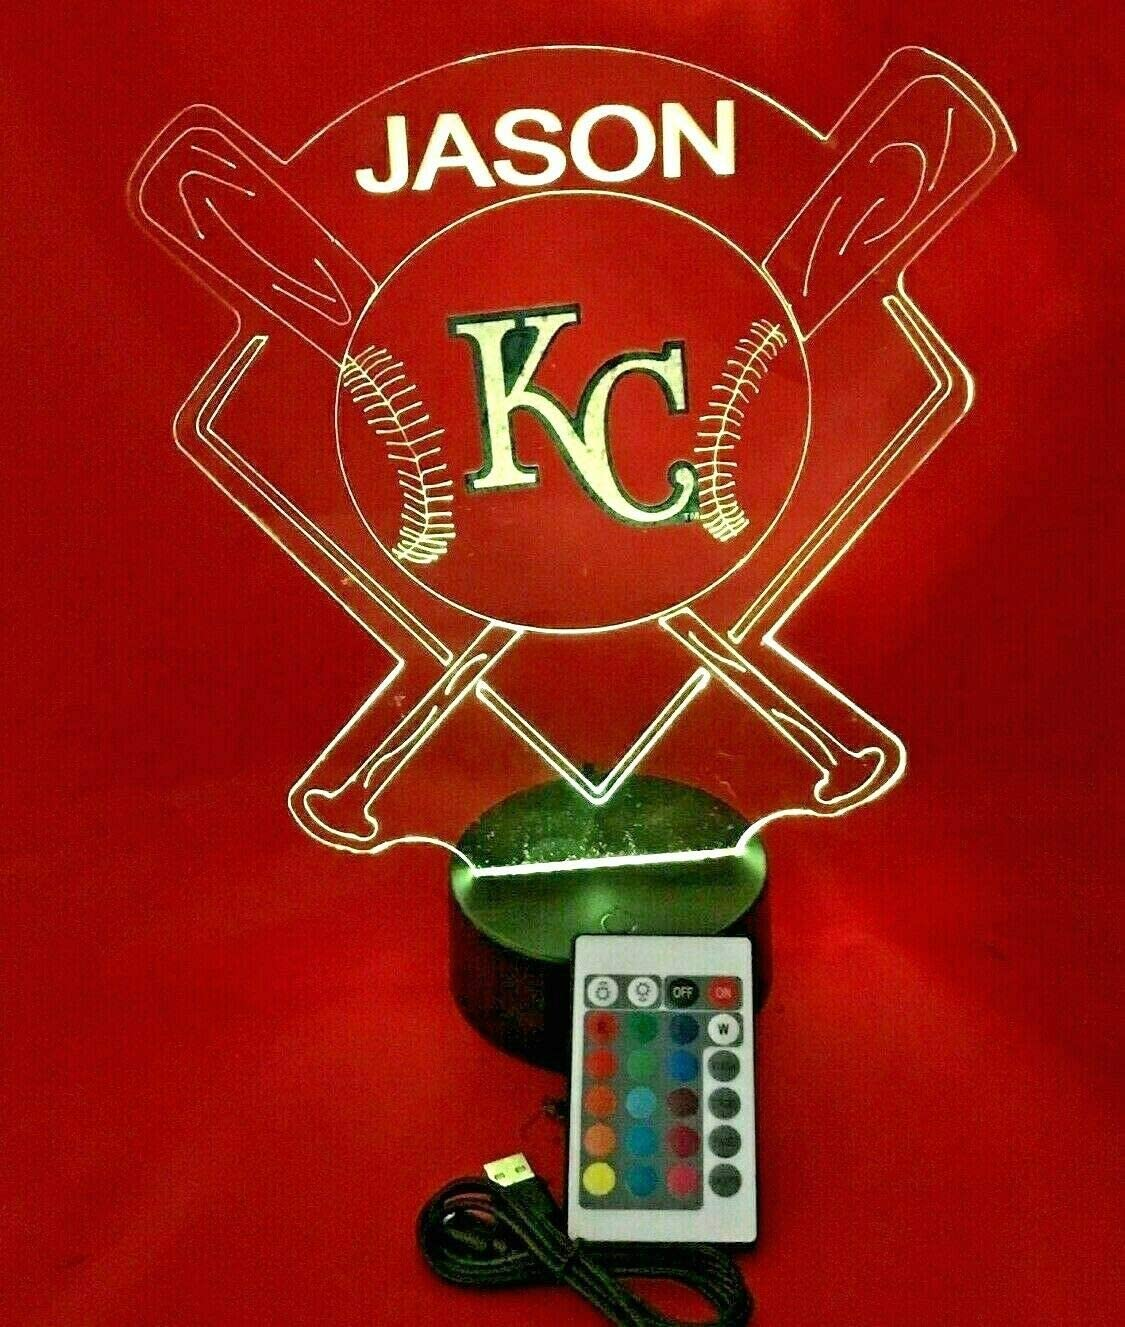 Baseball Night Light Up Lamp LED Lamp Personalized Handmade Stadium with Bats Free Personalization and Remote, Men Man Boys Girls Sports Gift, 16 Color Options, and Variations! (KC Royals)